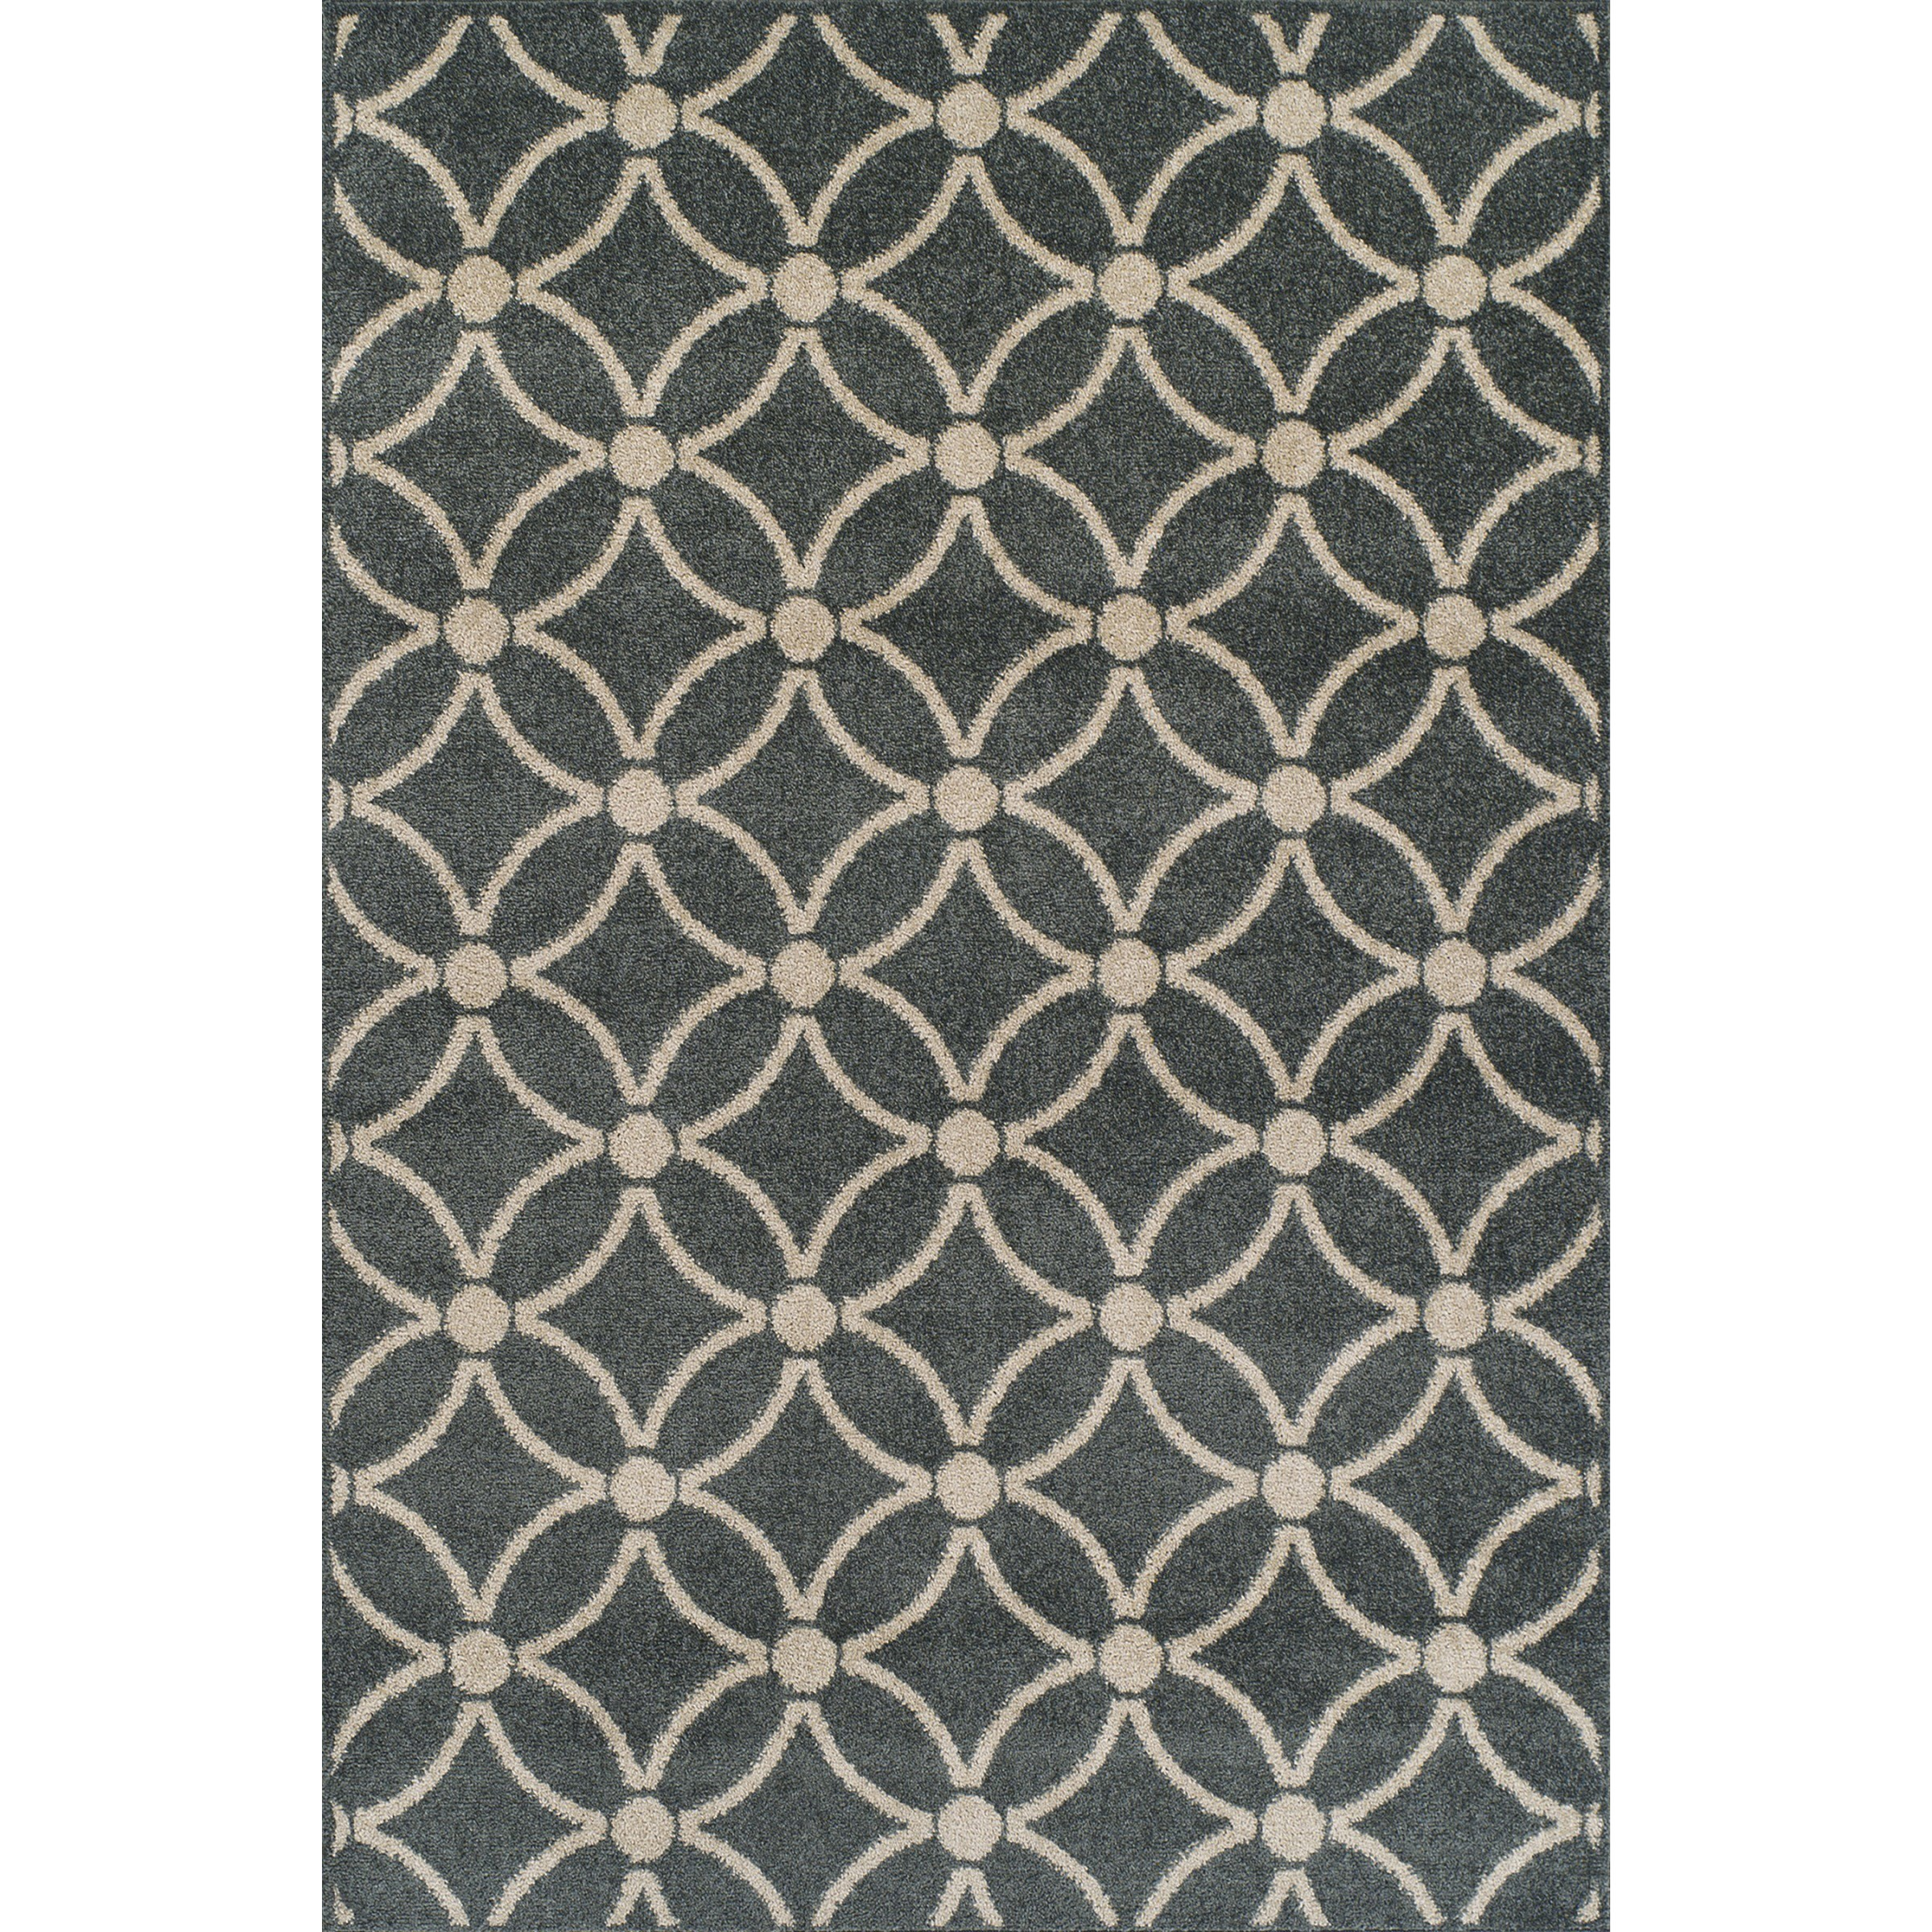 """Marcello Cobalt 8'2""""X10' Rug by Dalyn at Fashion Furniture"""